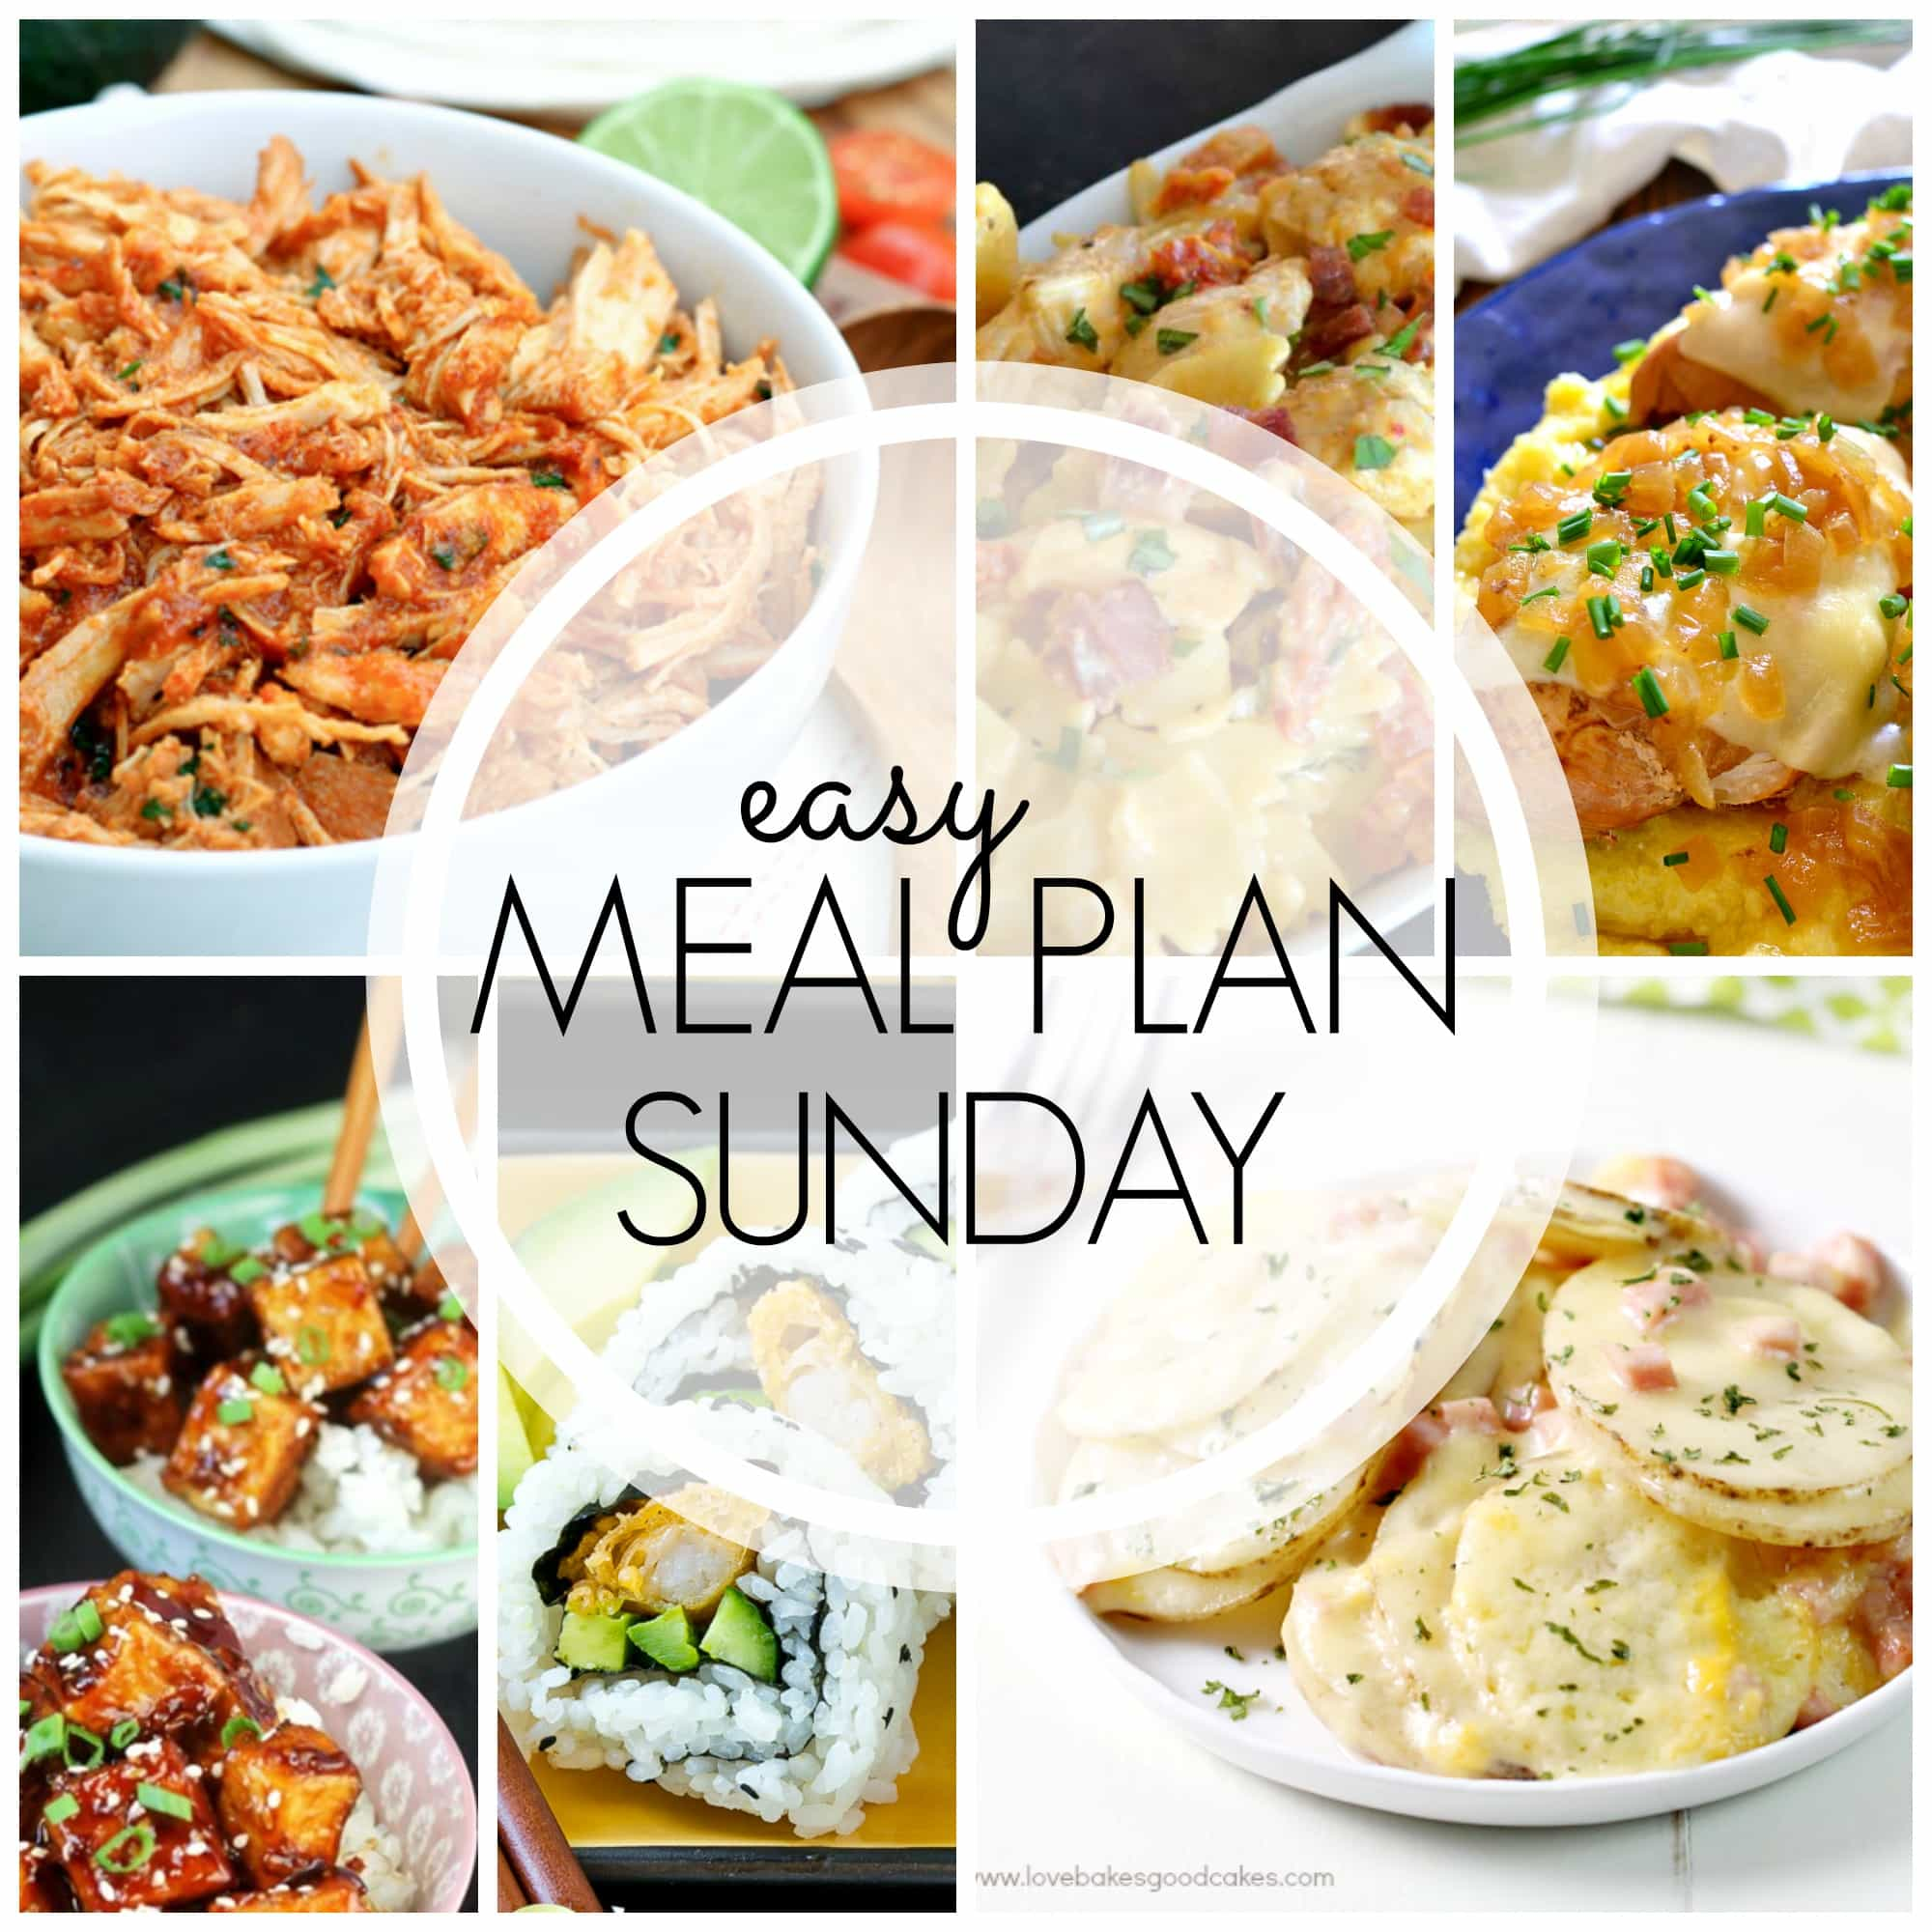 easy meal plan sunday week 63 love bakes good cakes